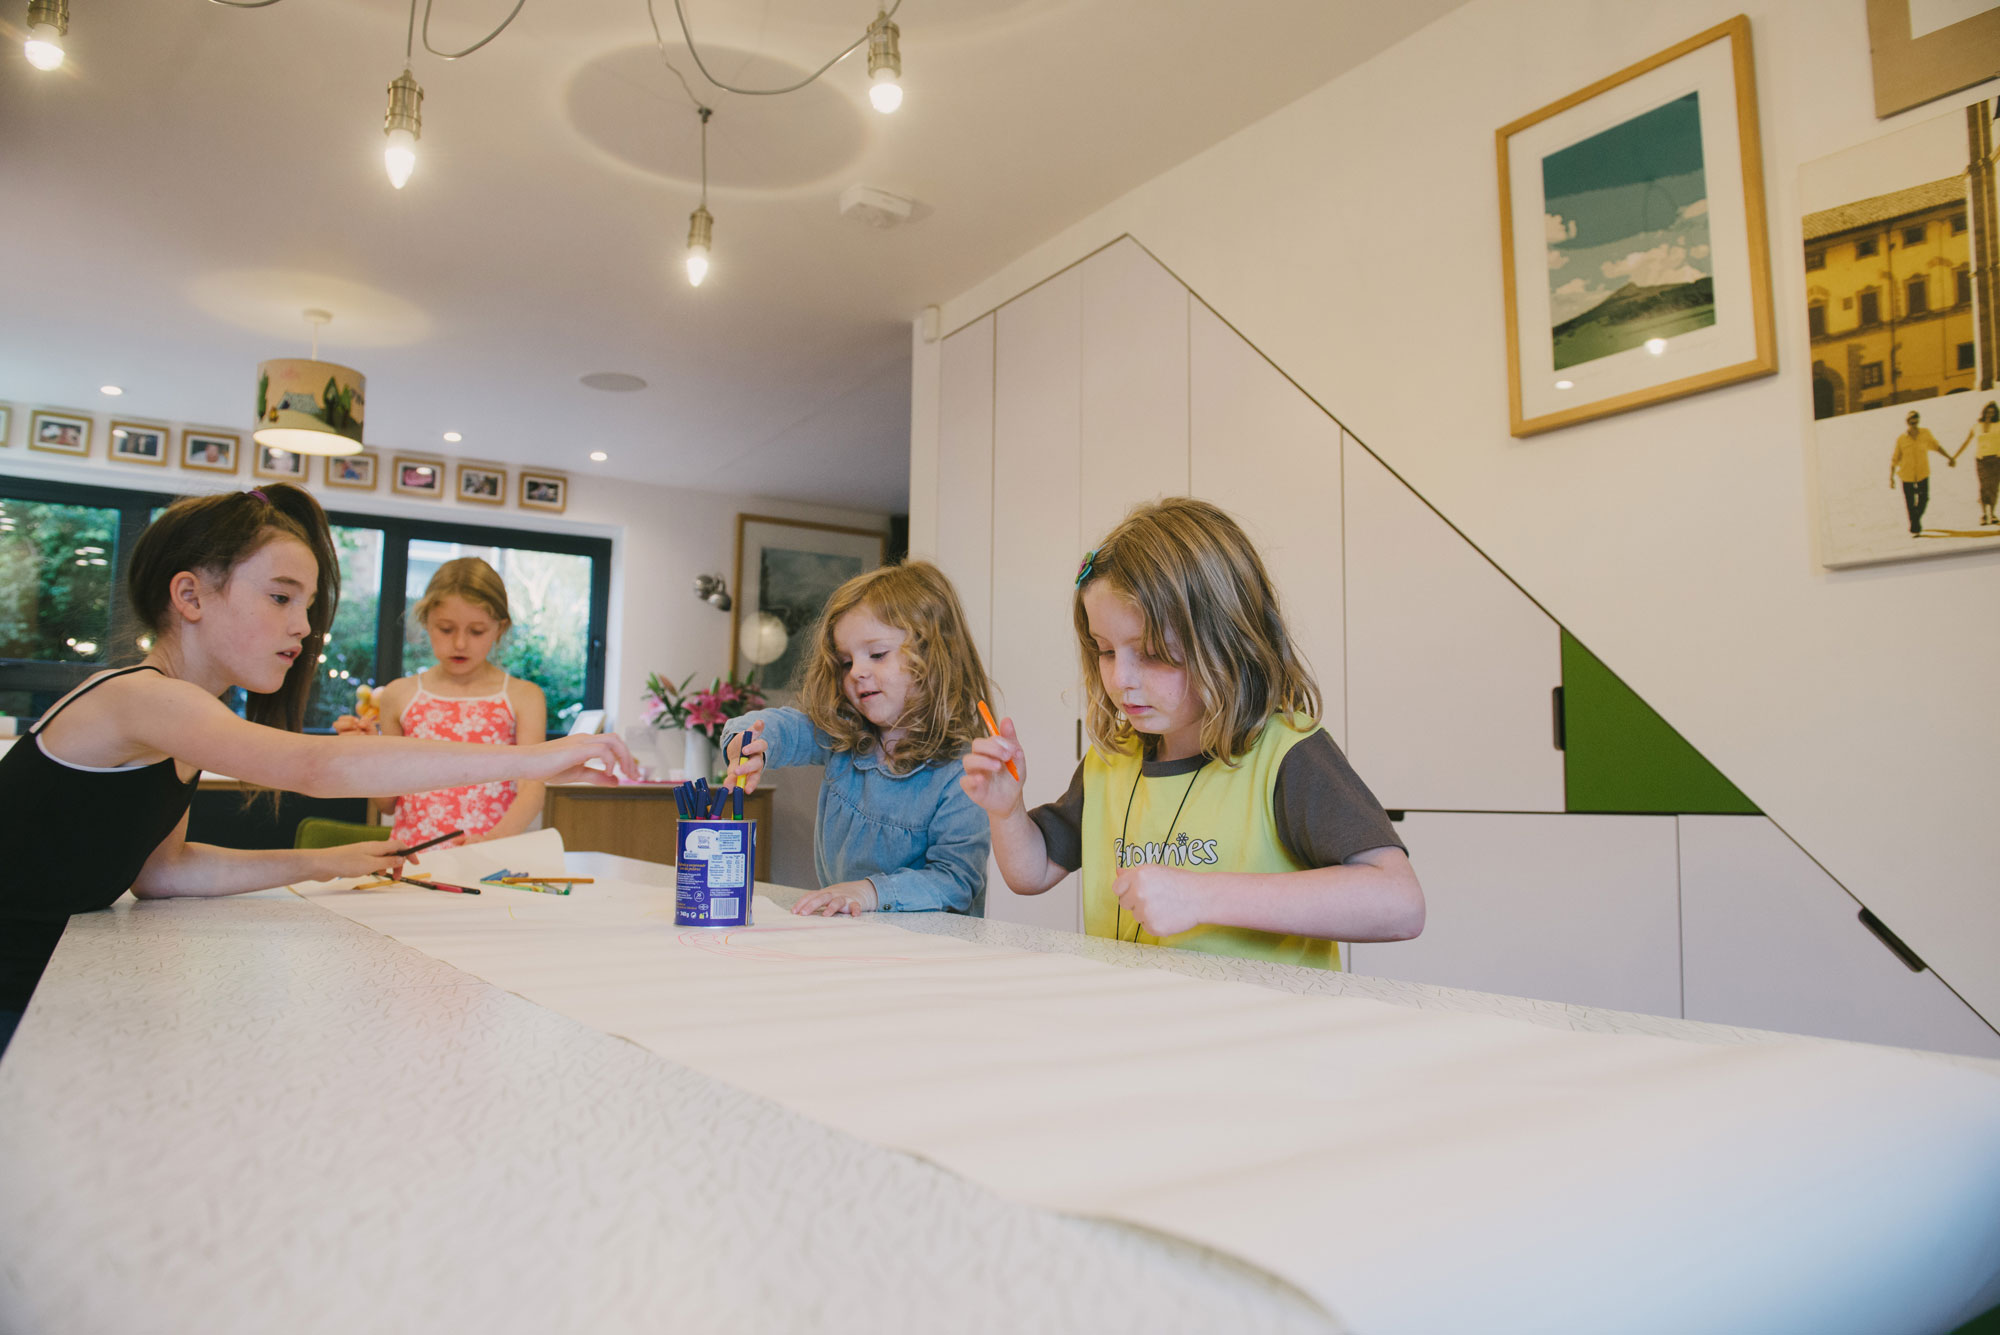 Children colouring in at the kitchen table